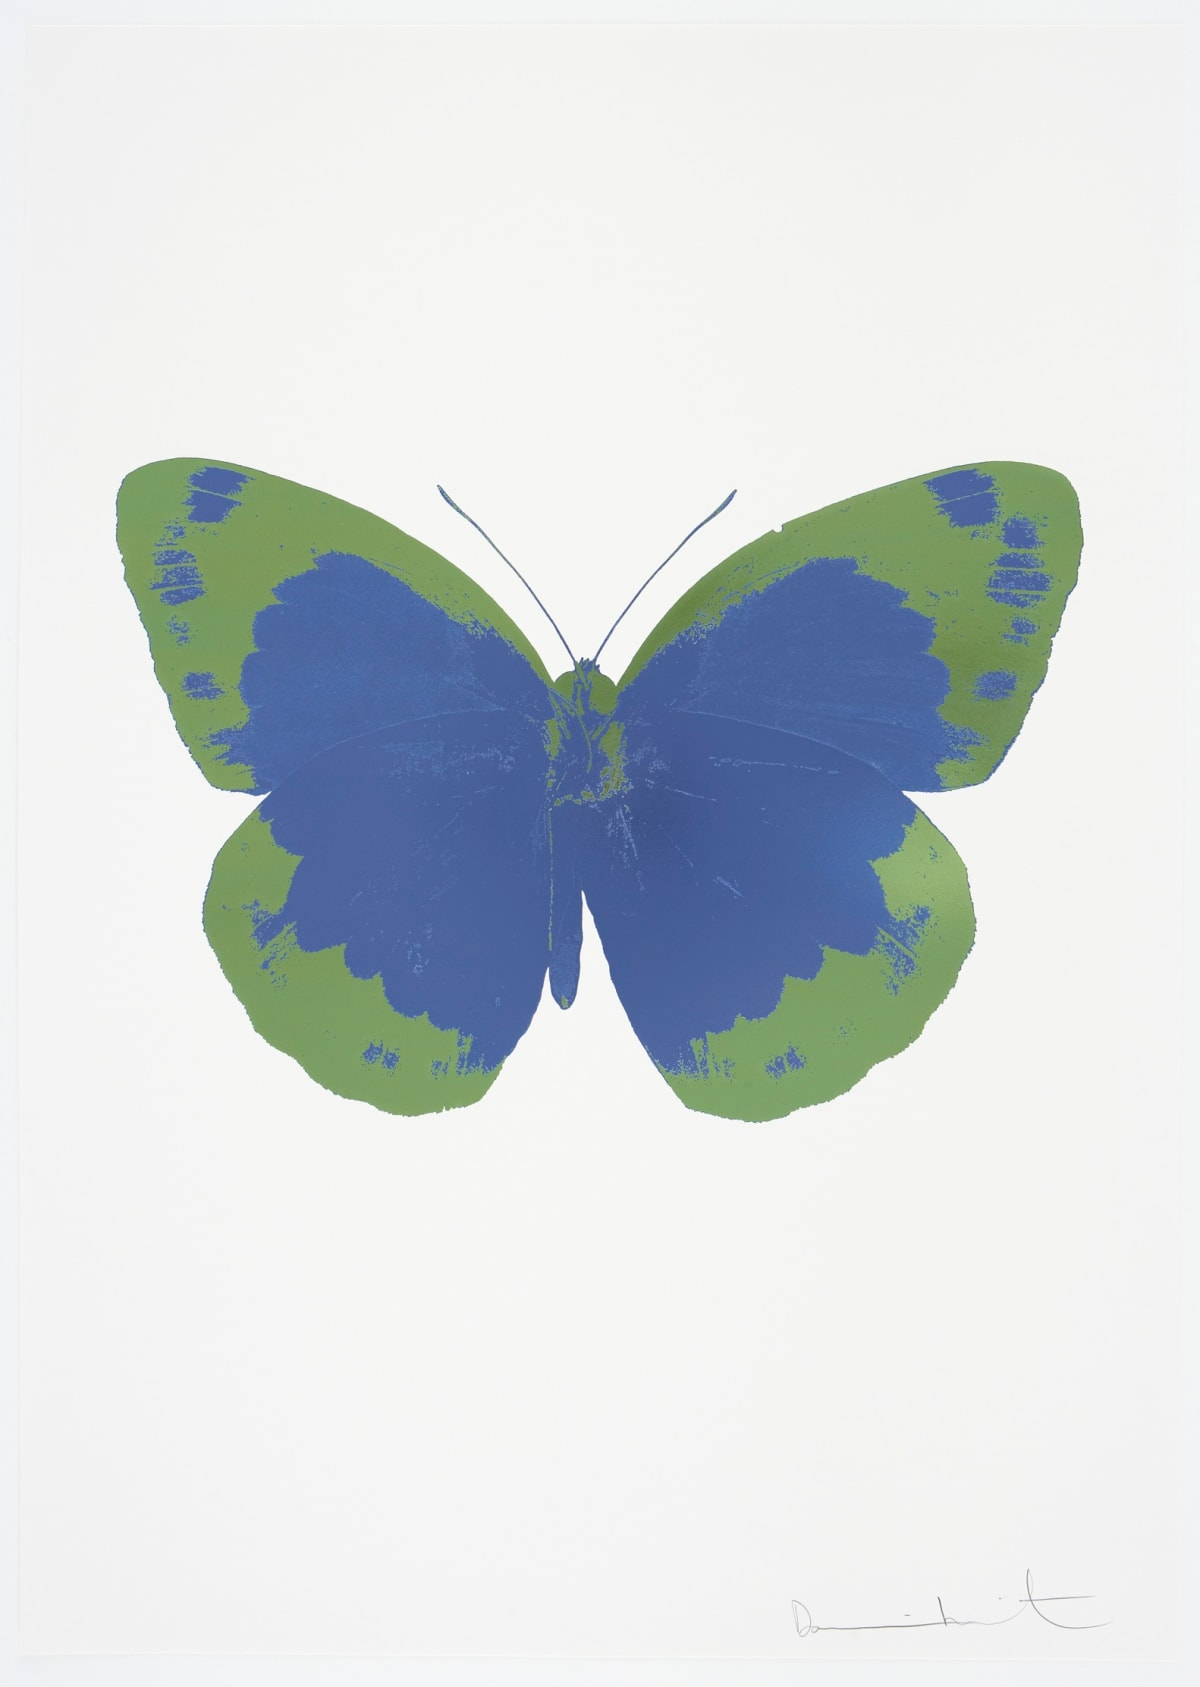 Damien Hirst The Souls II - Frost Blue/Leaf Green/Blind Impression, 2010 2 colour foil block on 300gsm Arches 88 archival paper. Signed and numbered. Published by Paul Stolper and Other Criteria 72 x 51cm OC7845 / 658-28 Edition of 15